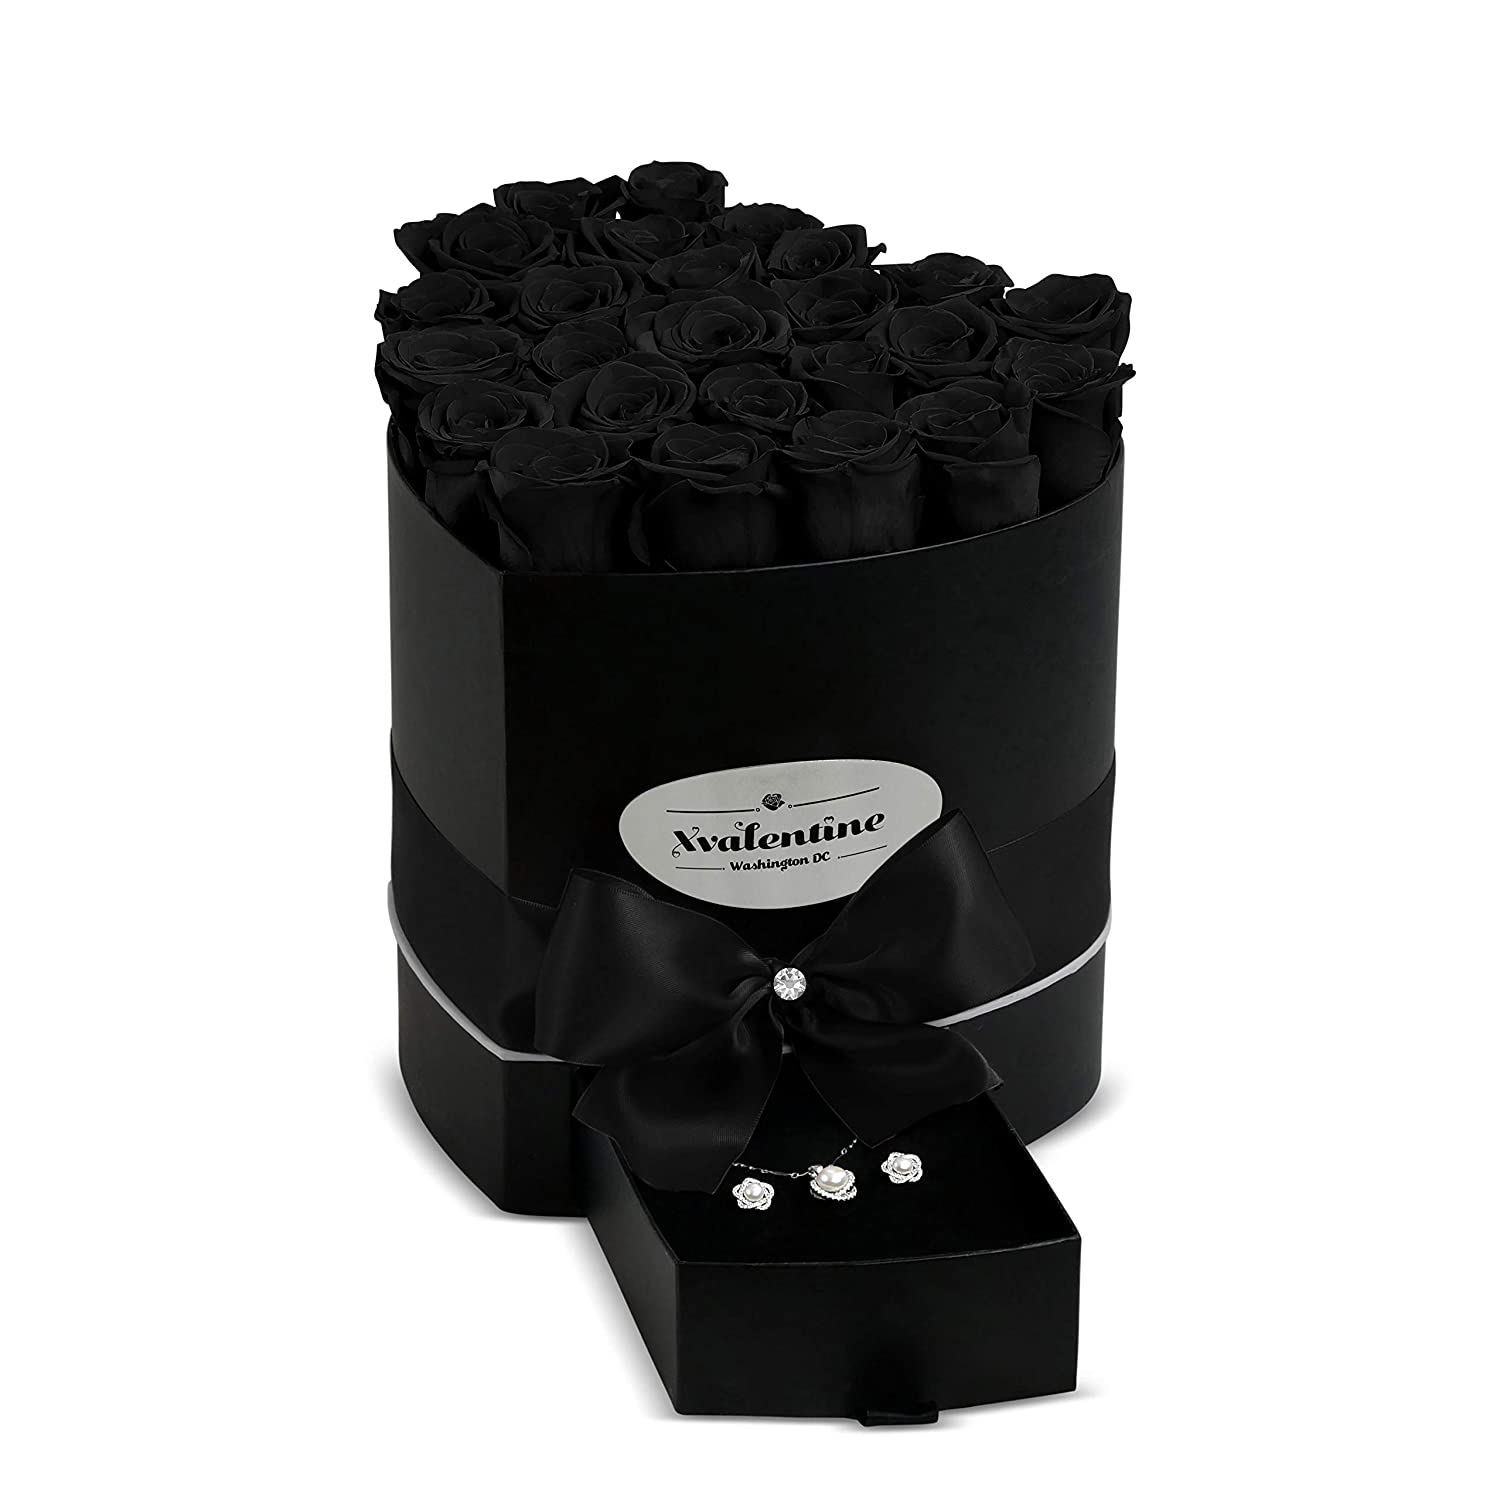 XValentine Love Black Box & Black Forever Roses | Real Roses That Last A Year| Eternal Roses | Preserved Roses That Last Forever | Handmade Rose Box | Eternity Roses for Any Occasion